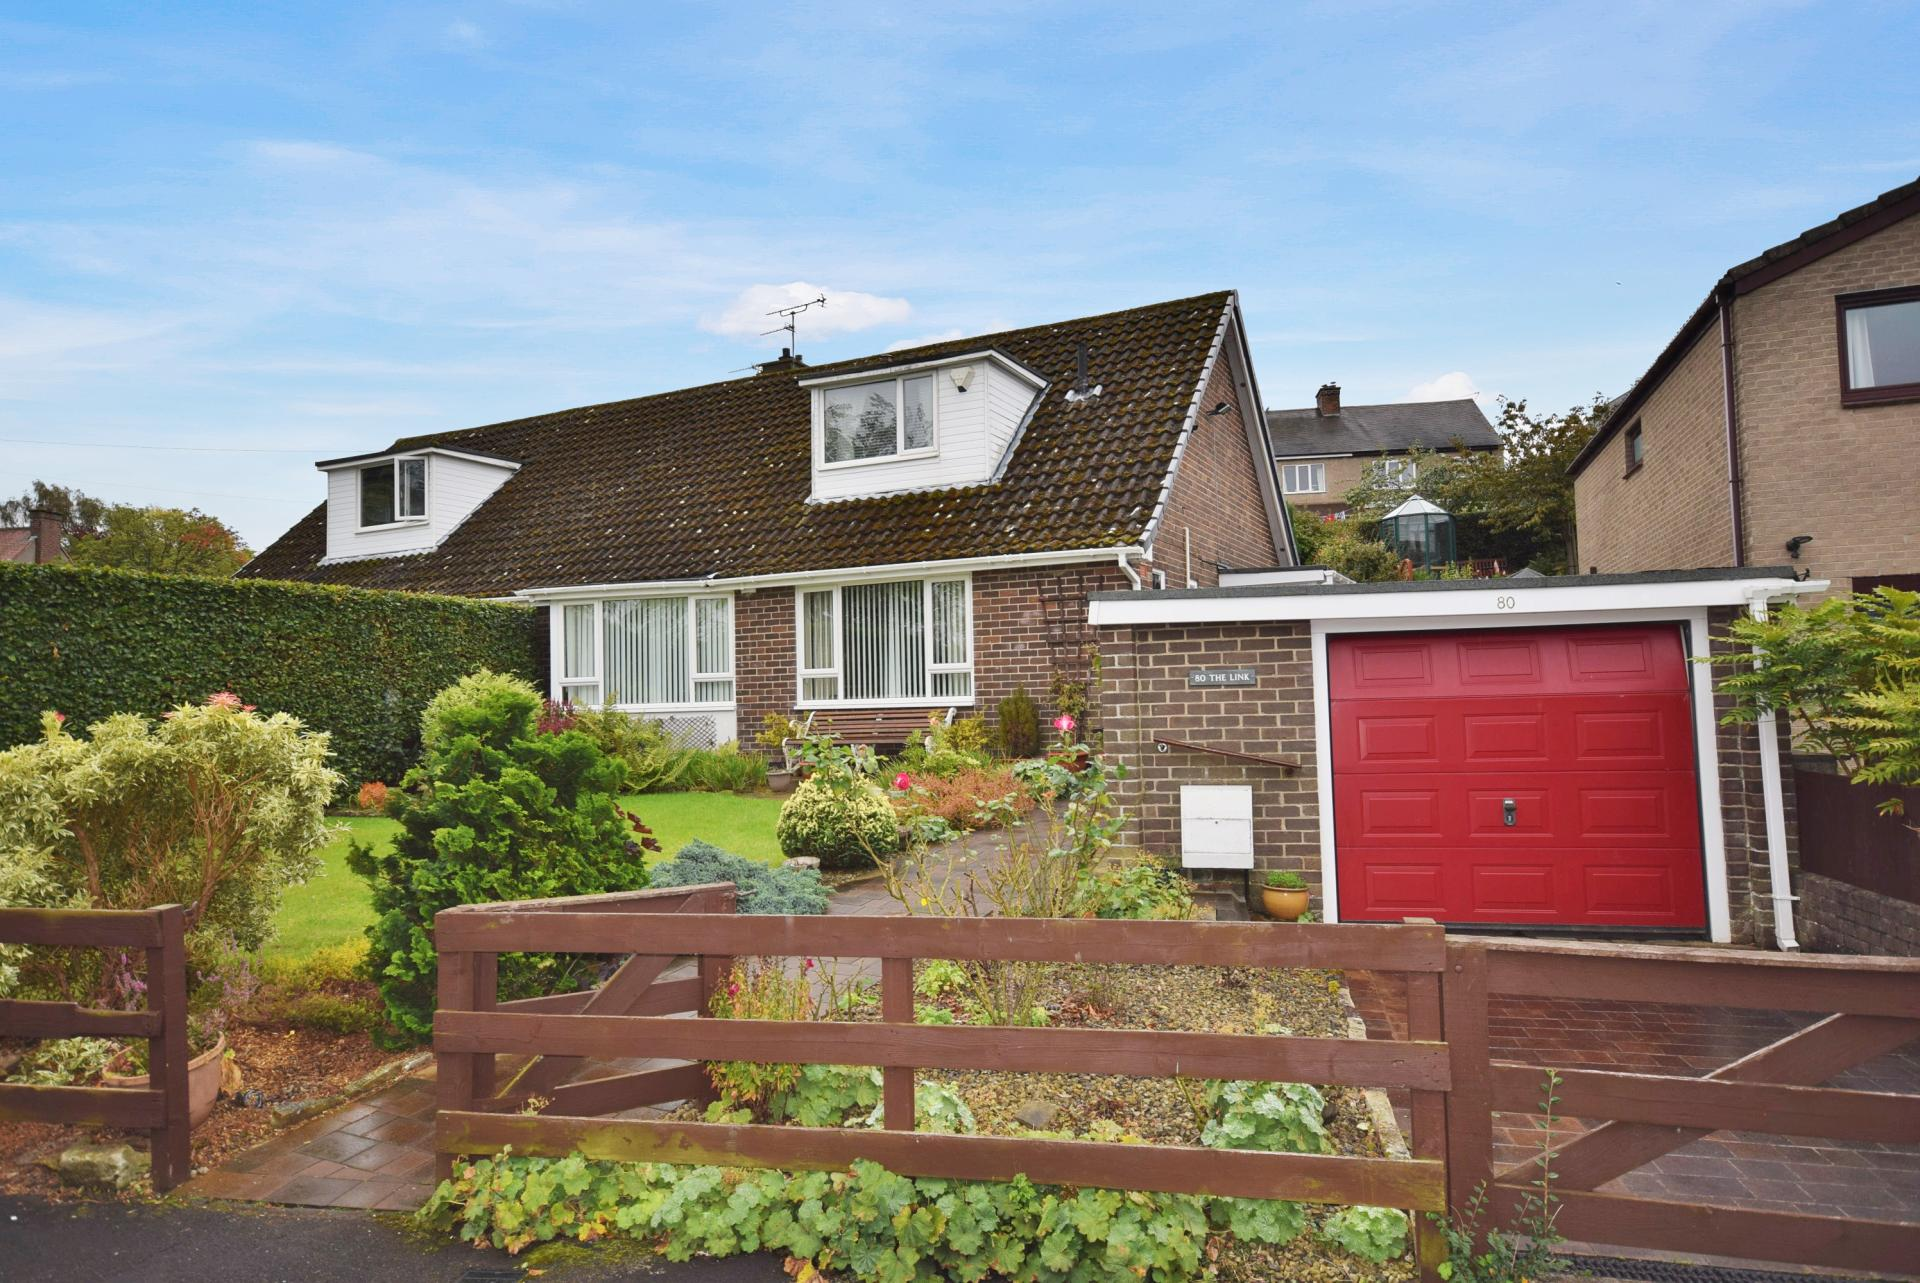 3 Bedrooms Bungalow for sale in The Link, Hexham